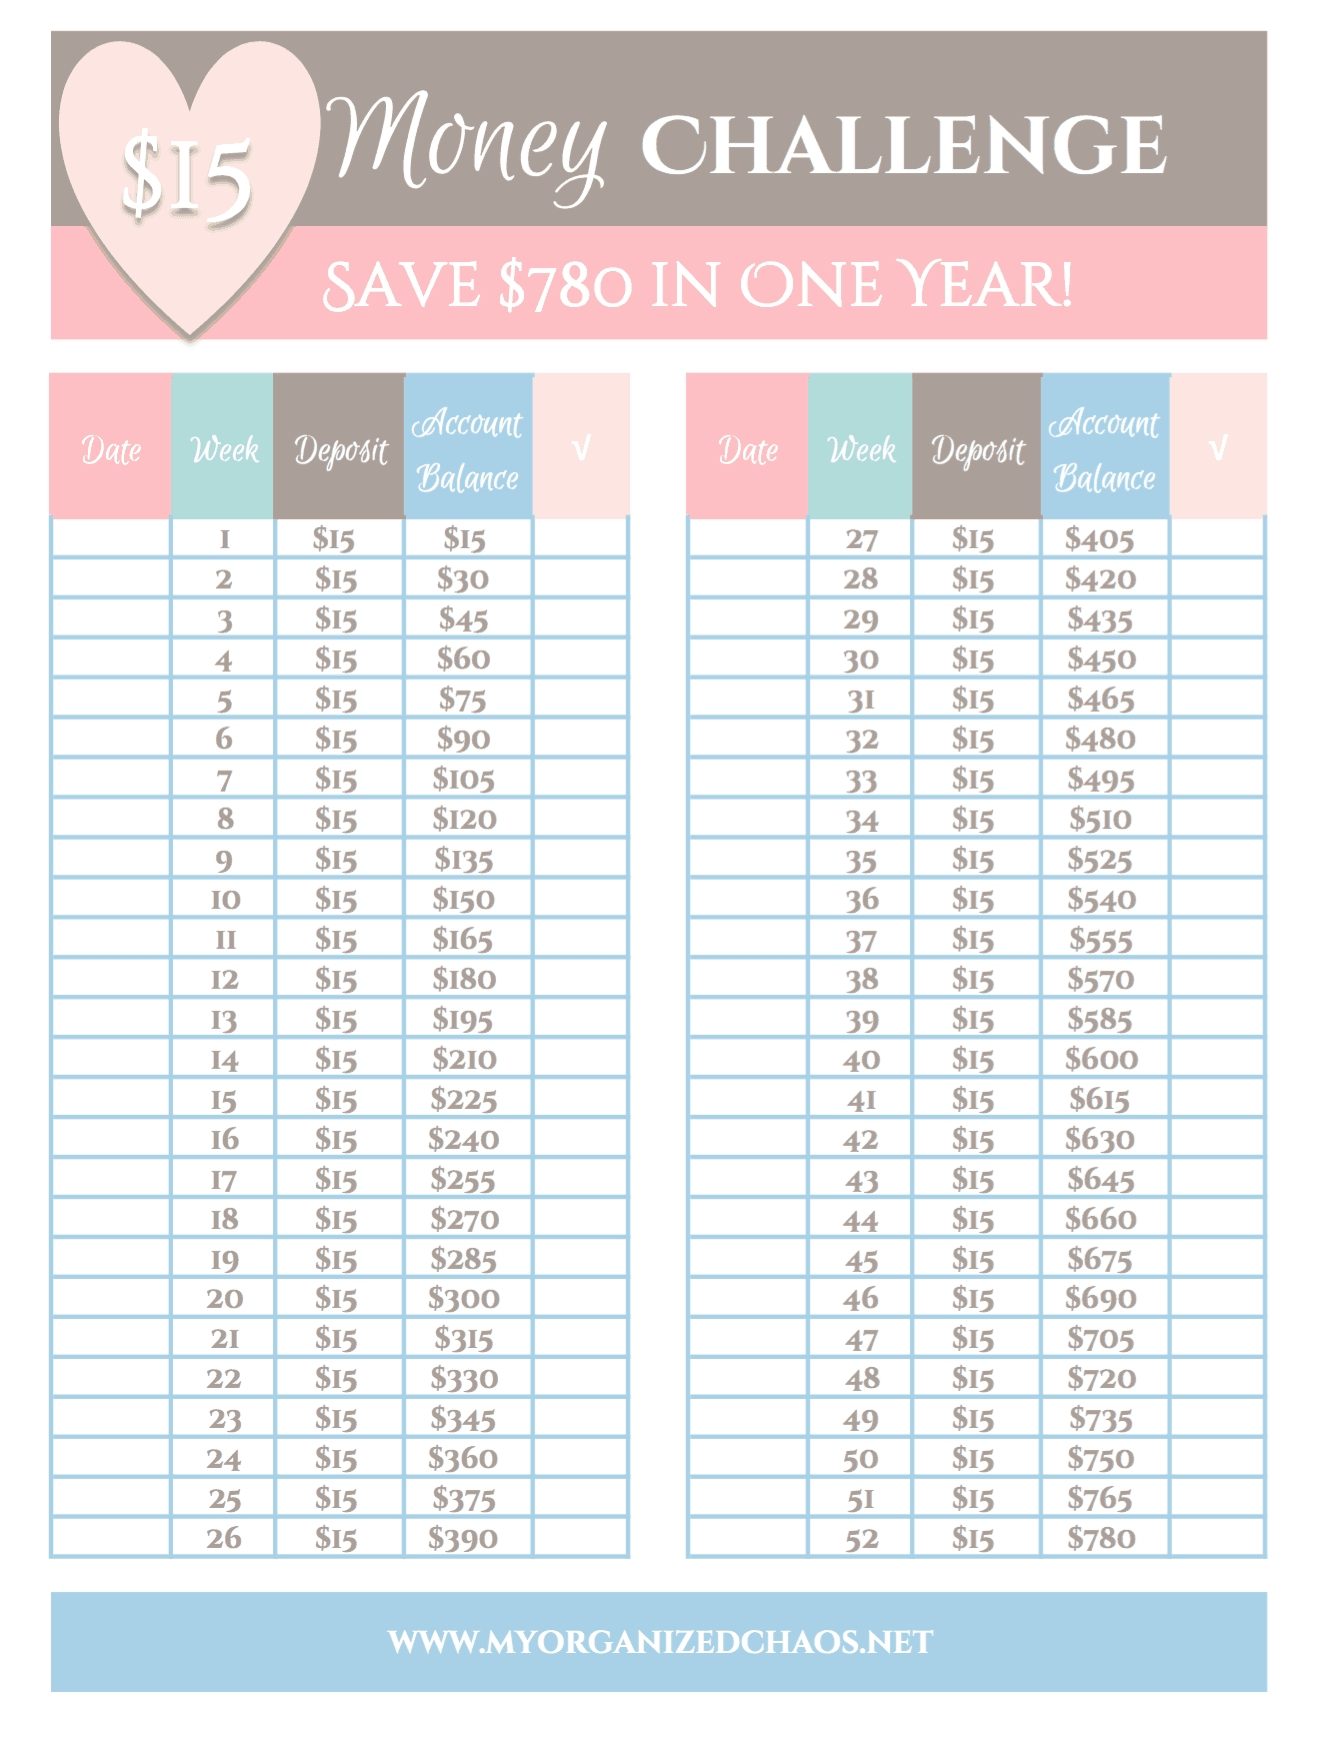 2 Easy Money Savings Challenges - My Organized Chaos